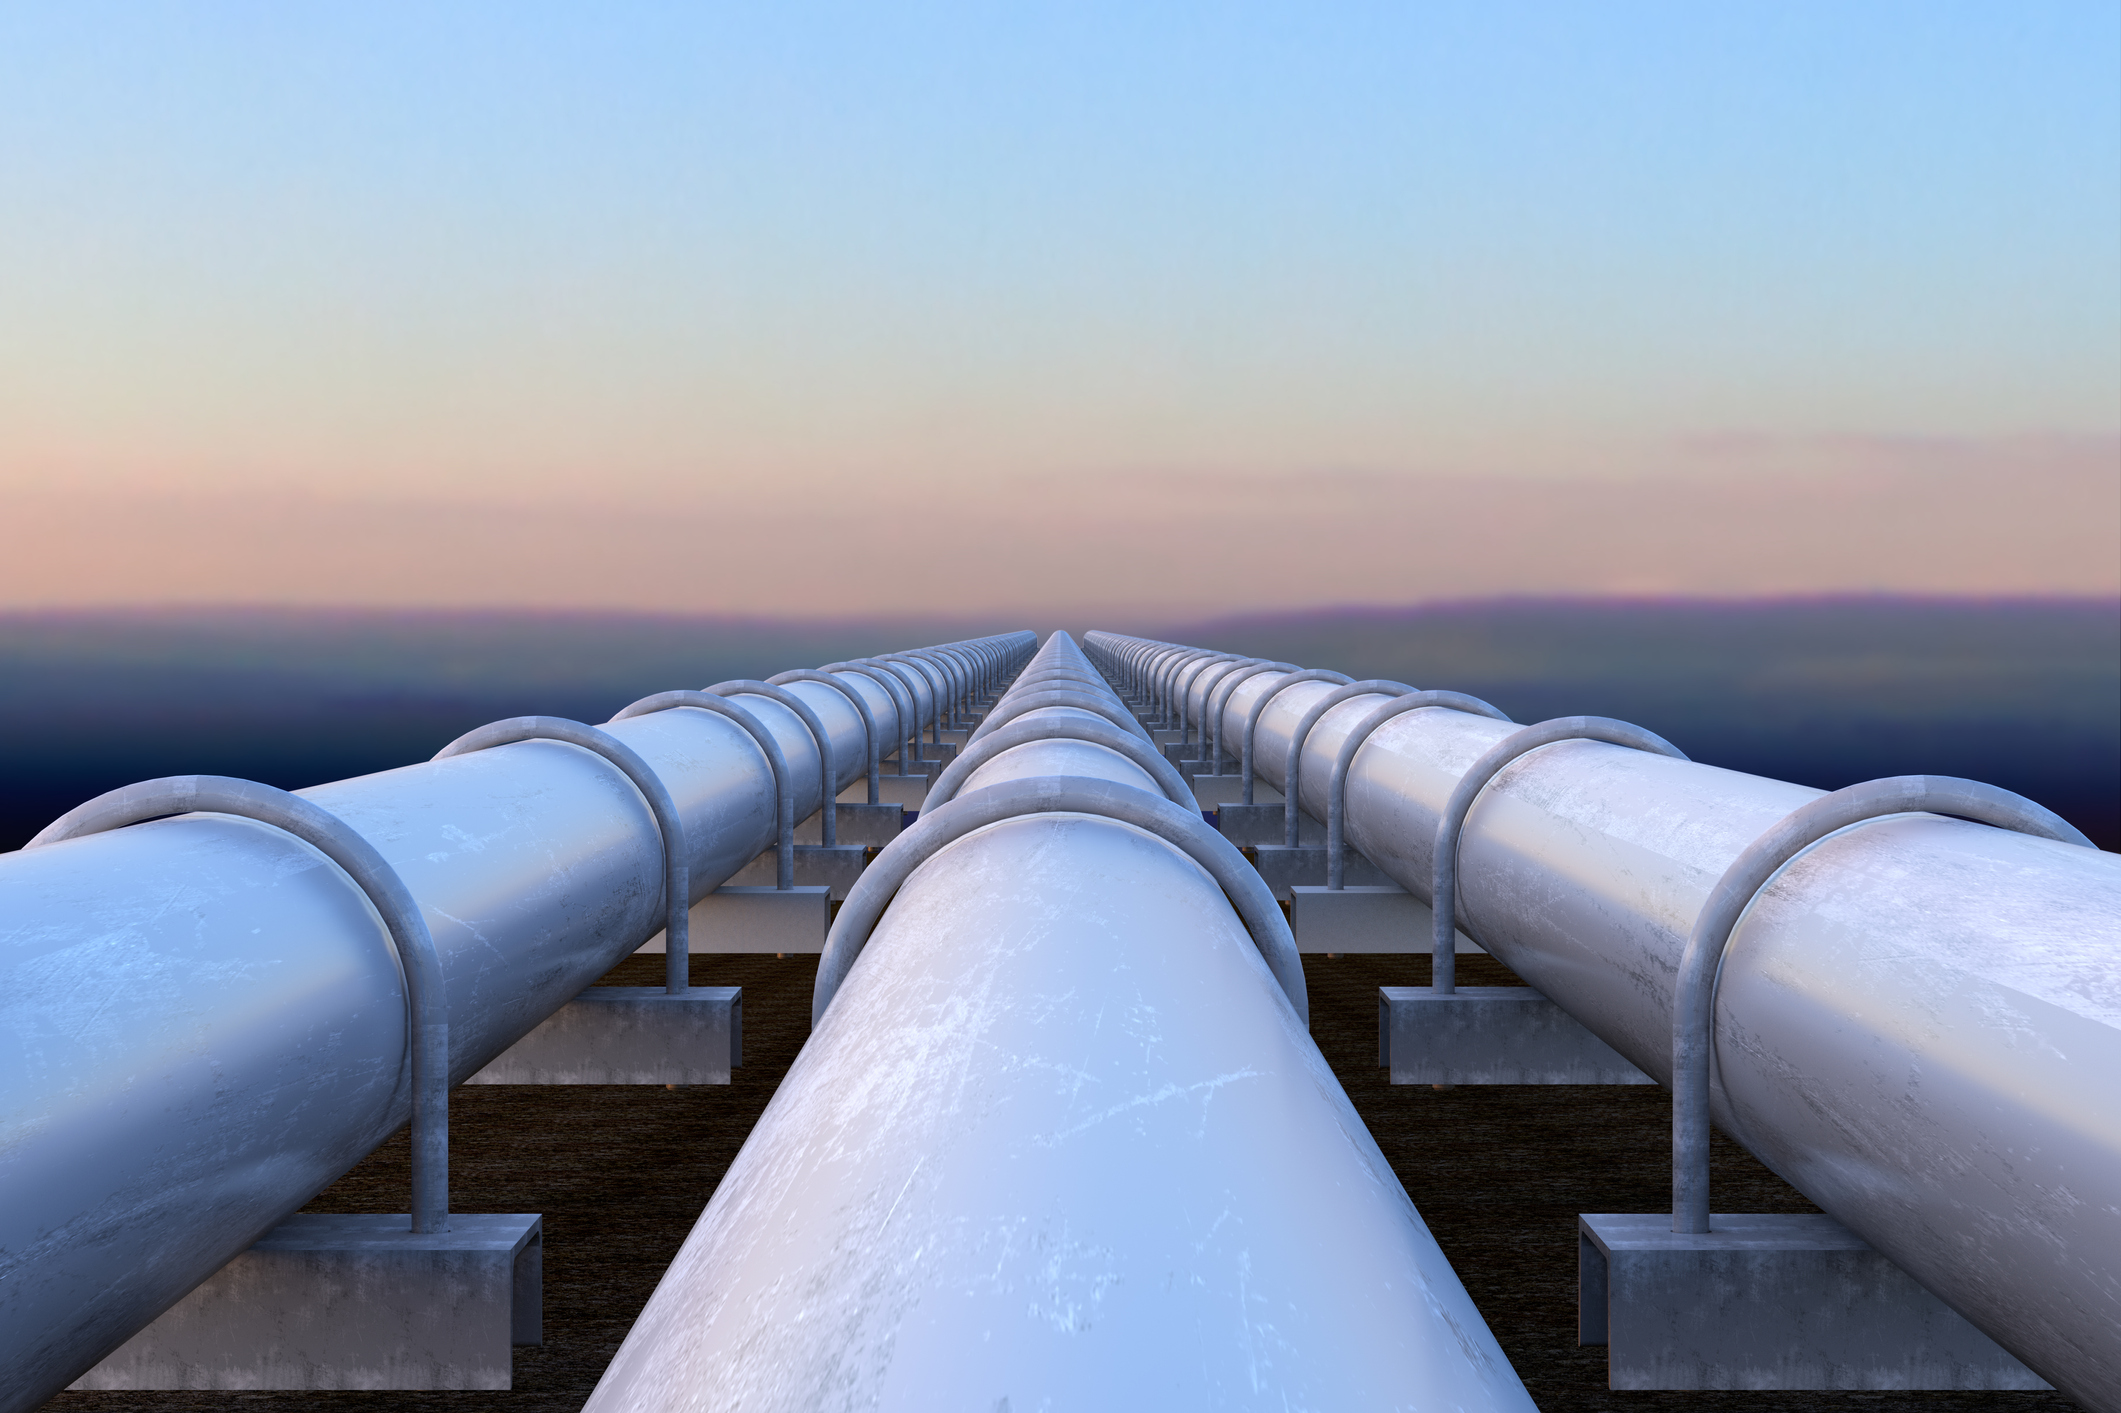 White pipelines at sunrise